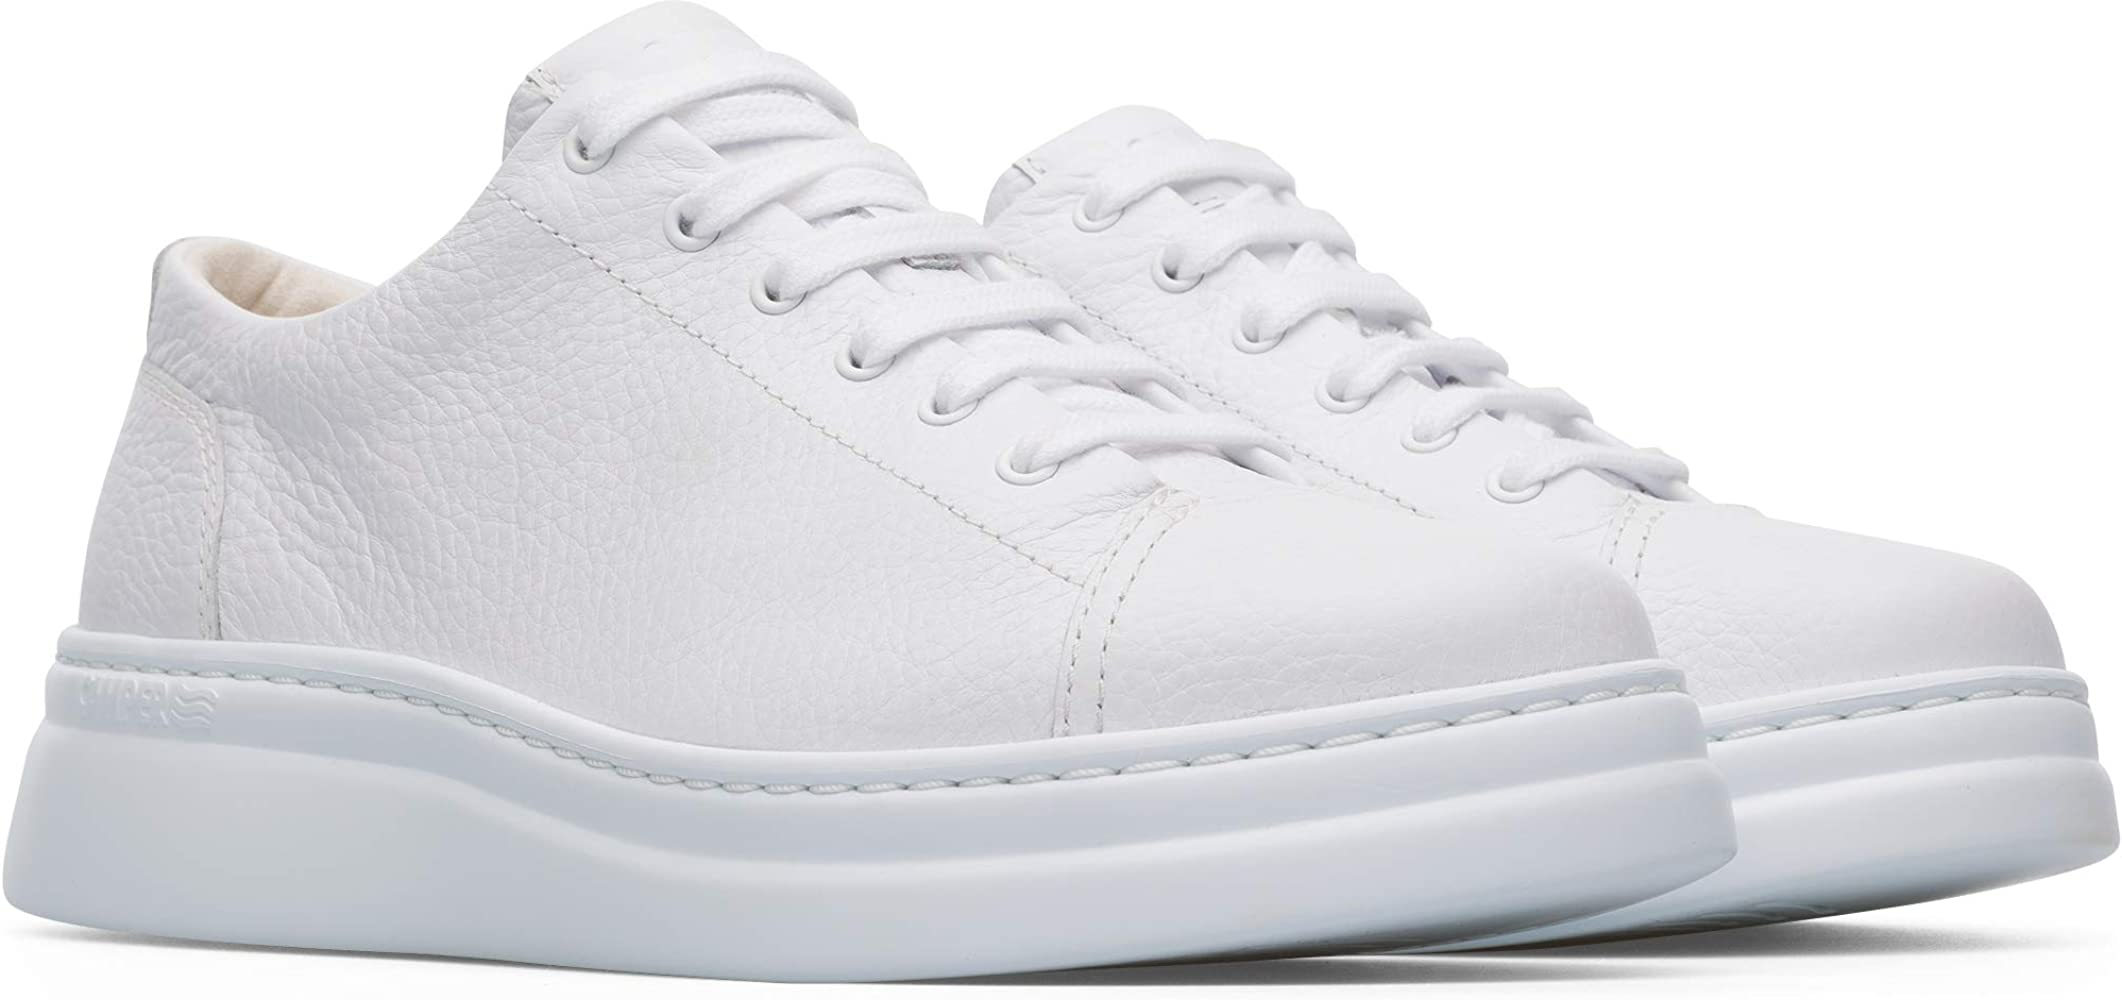 cee9ad778945 Camper Runner Up, Sneakers Basses Femme, Blanc (White Natural ...